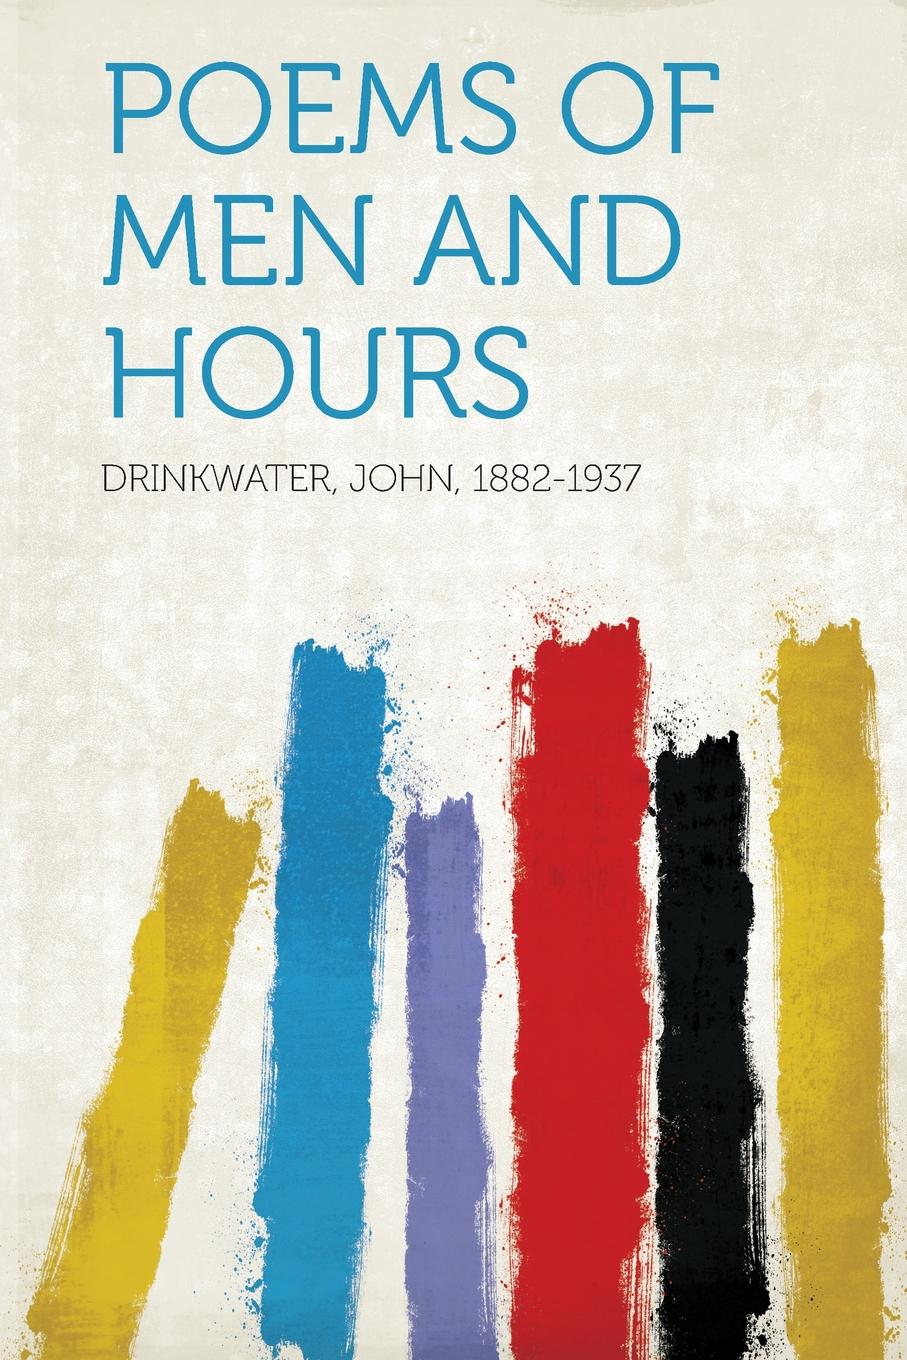 Drinkwater John 1882-1937 Poems of Men and Hours